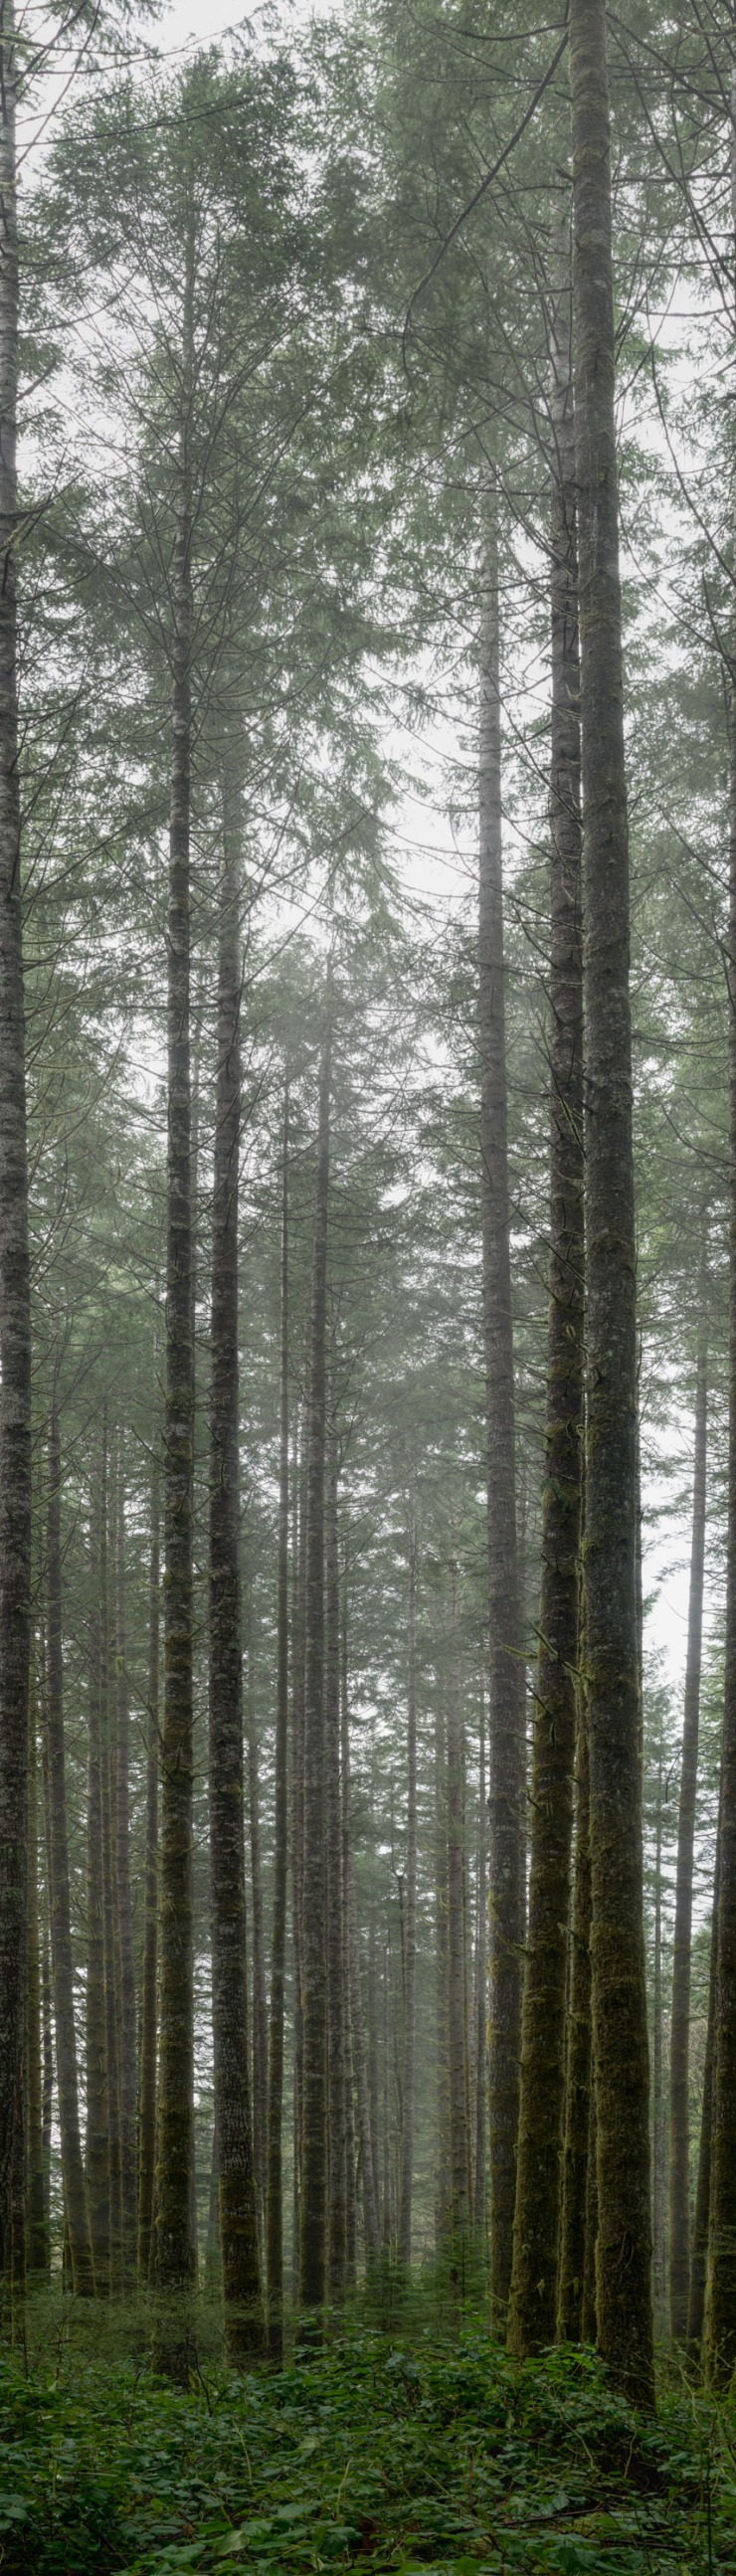 fog shrouded fir forest